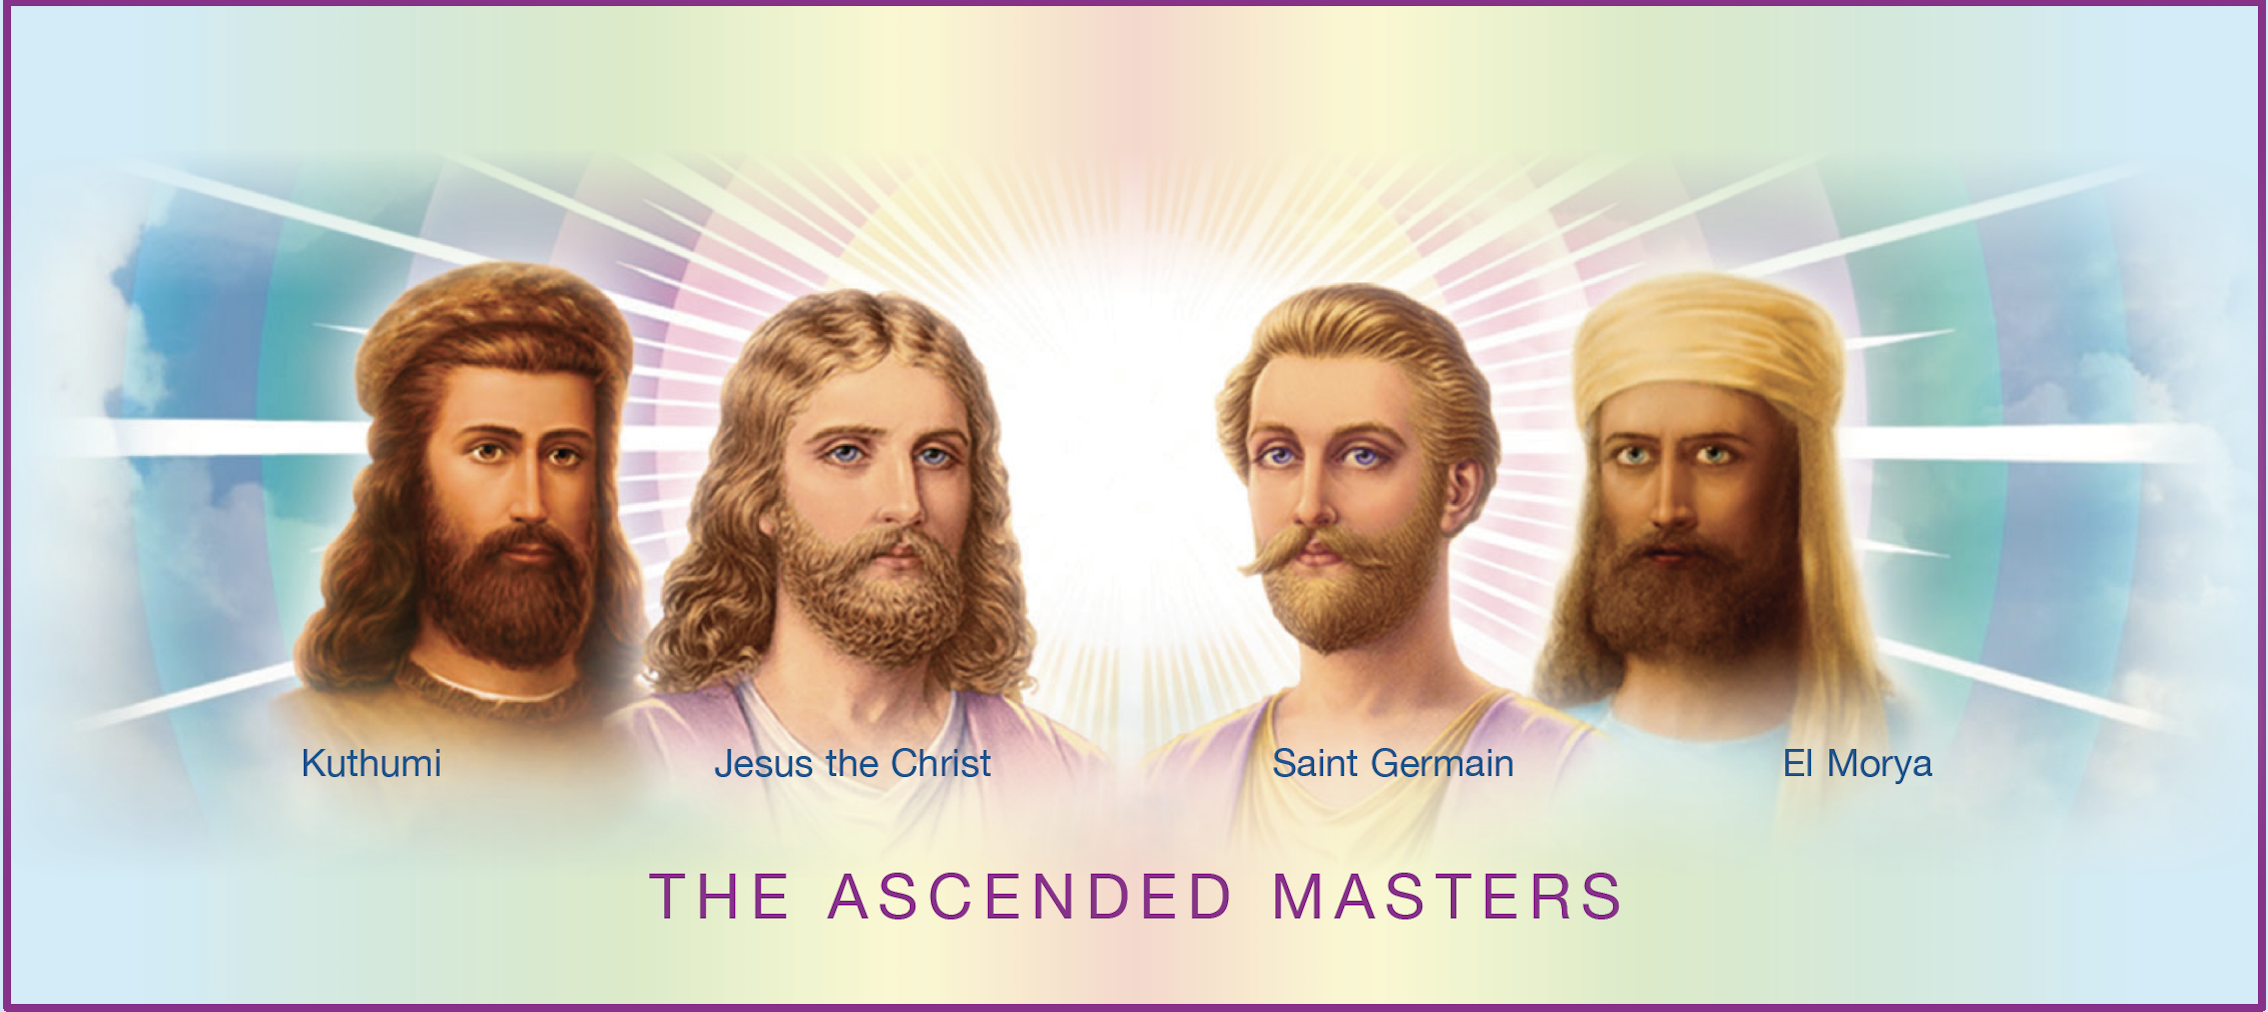 The Ascended Masters